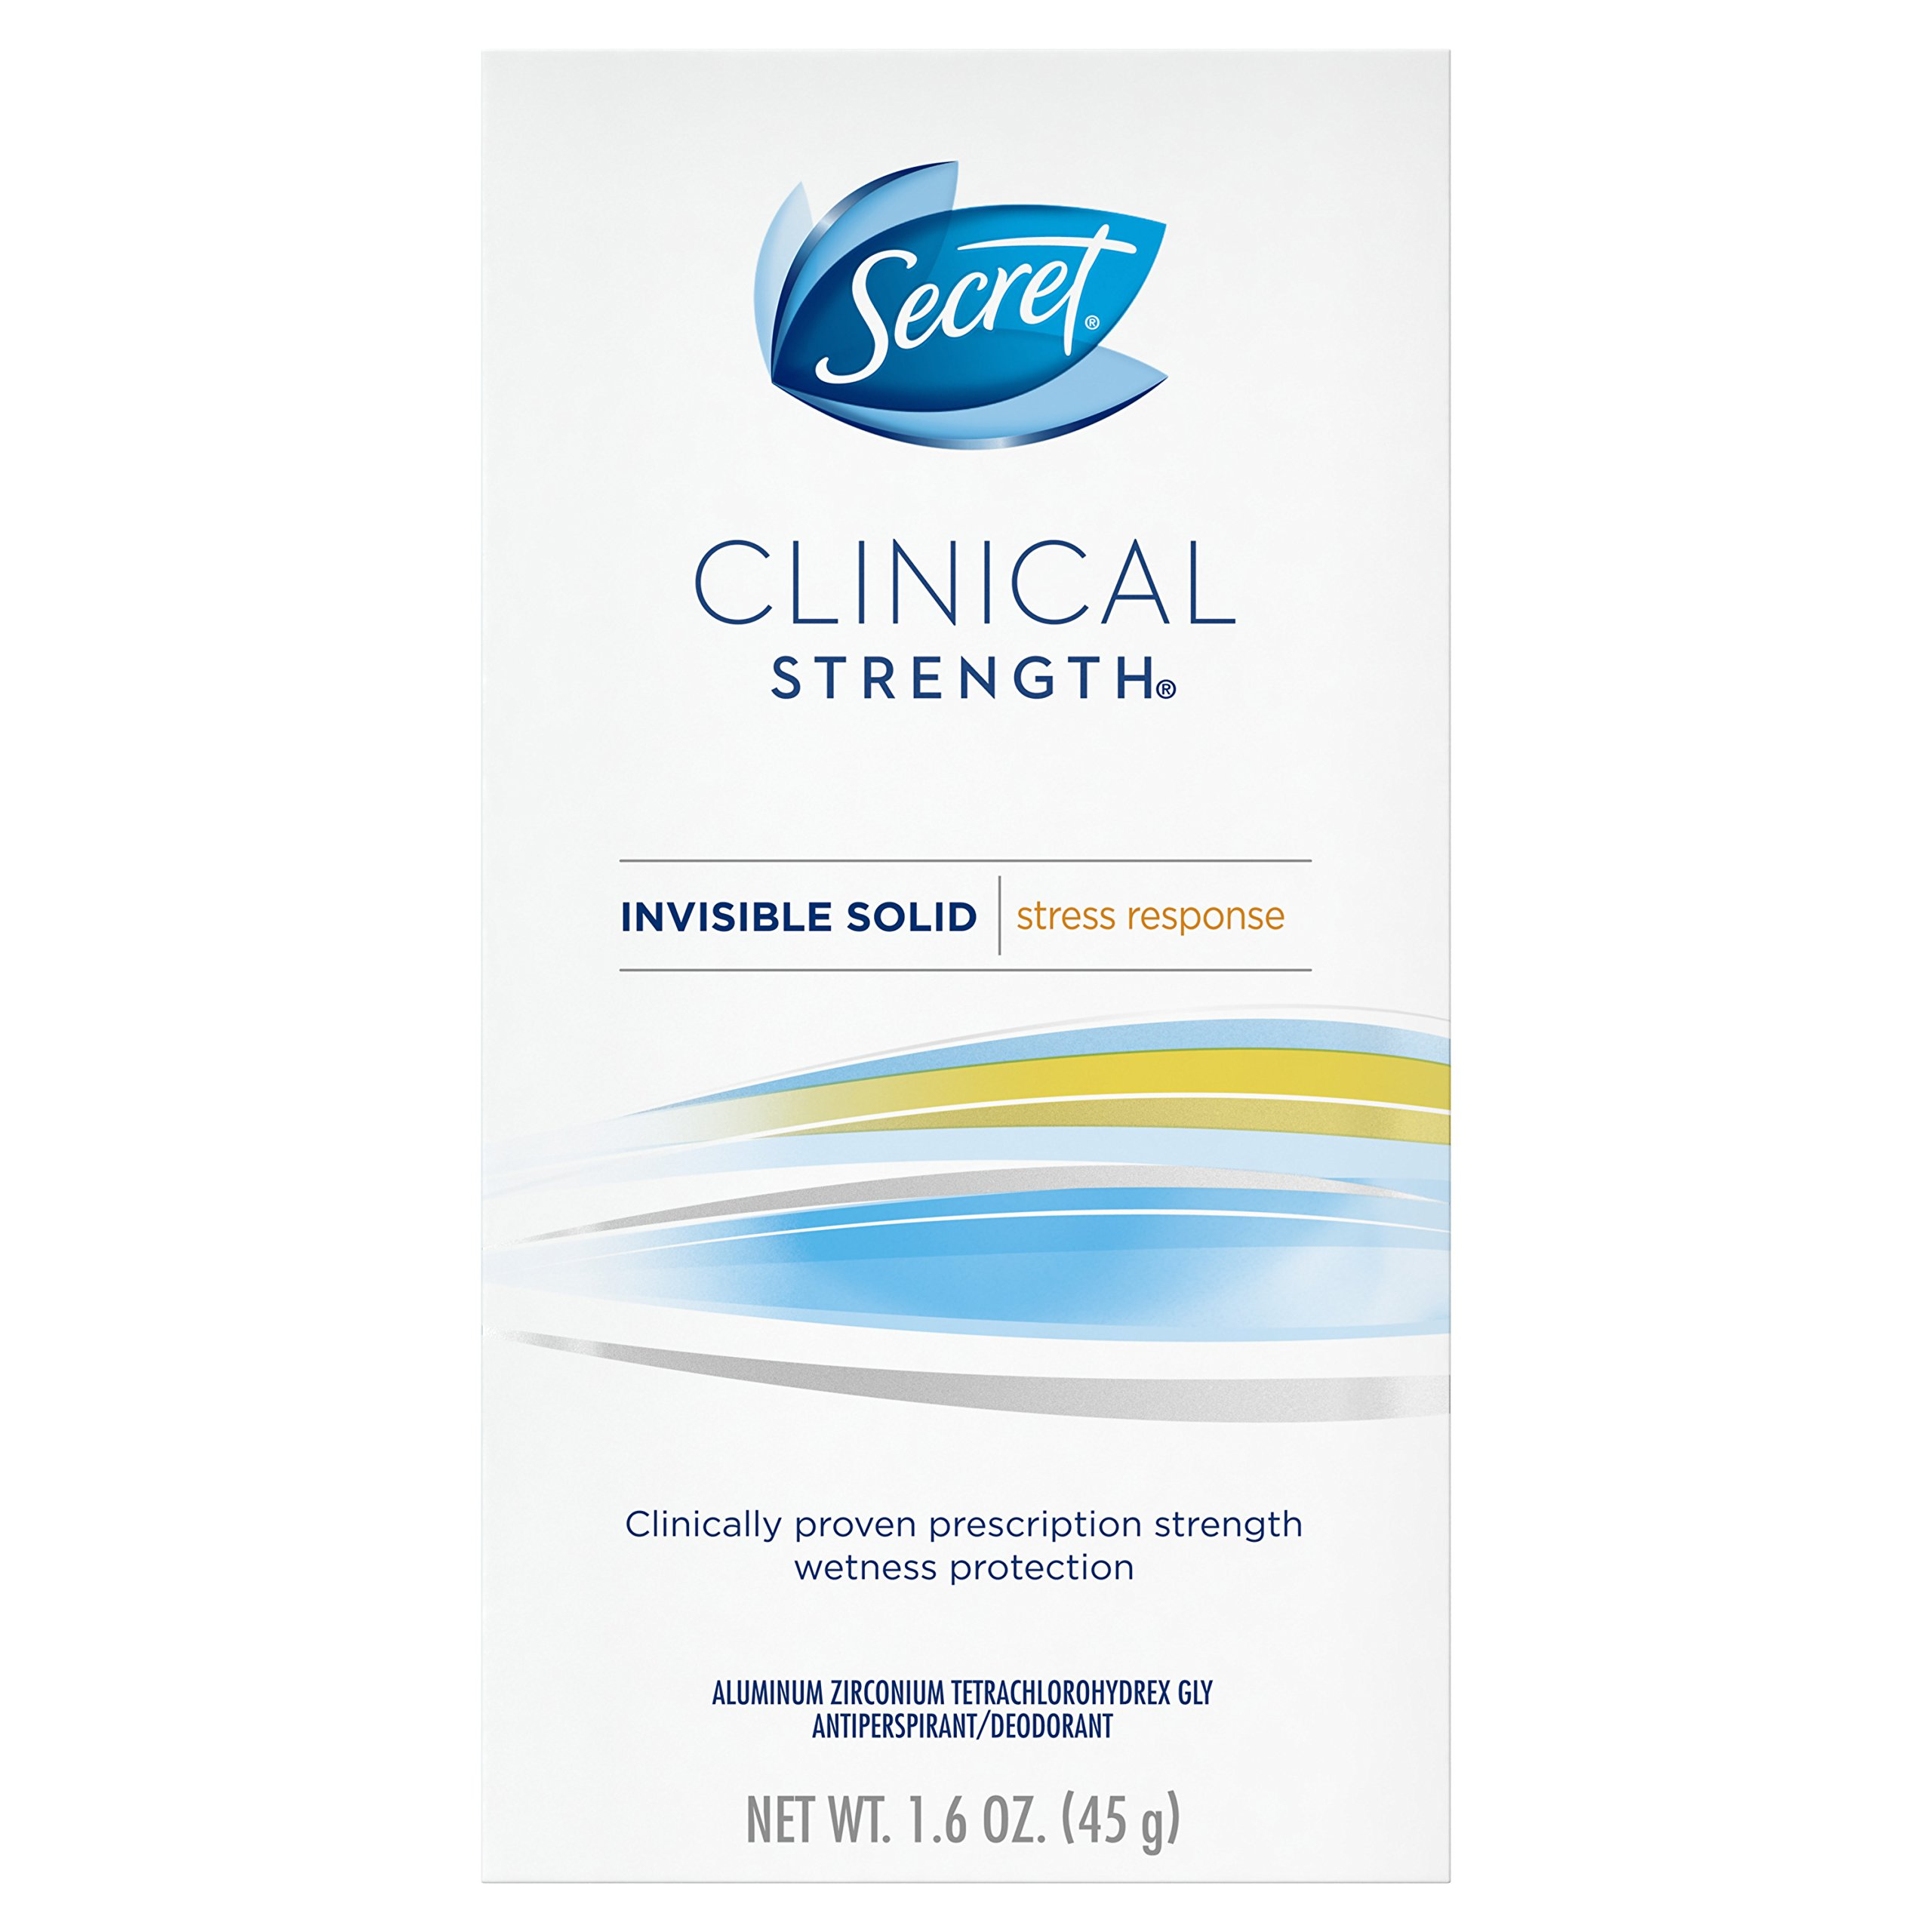 Secret Clinical Strength  Antiperspirant and Deodorant Invisible Solid, Stress Response, 1.6 Oz.  Packaging may Vary